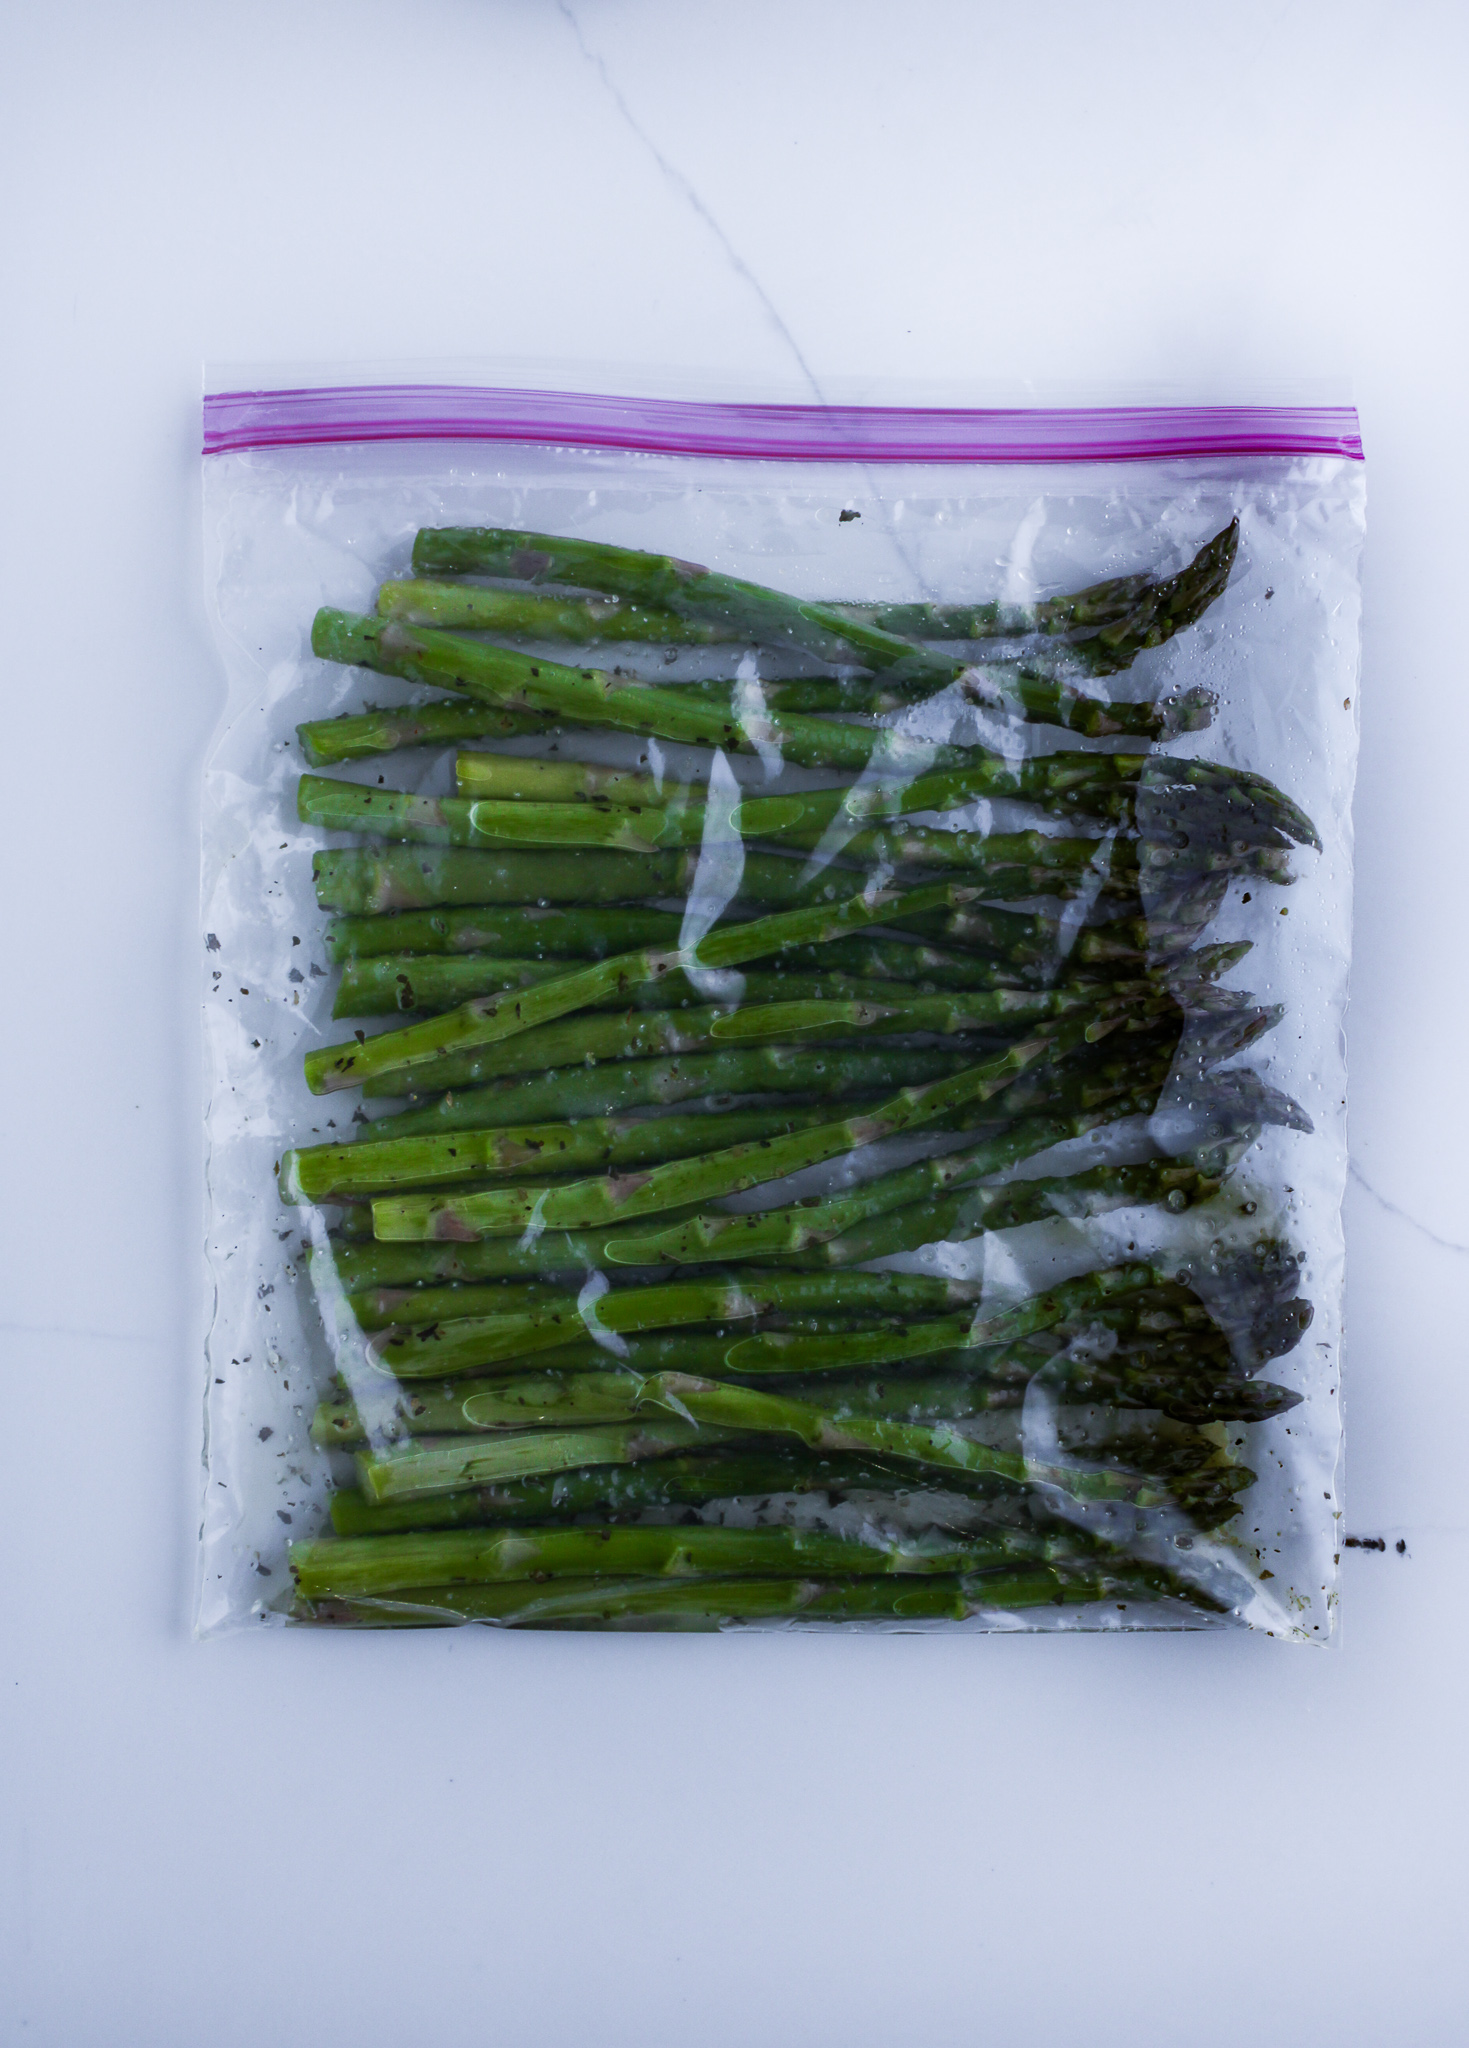 Asparagus marinating in the spices in a ziploc bag.